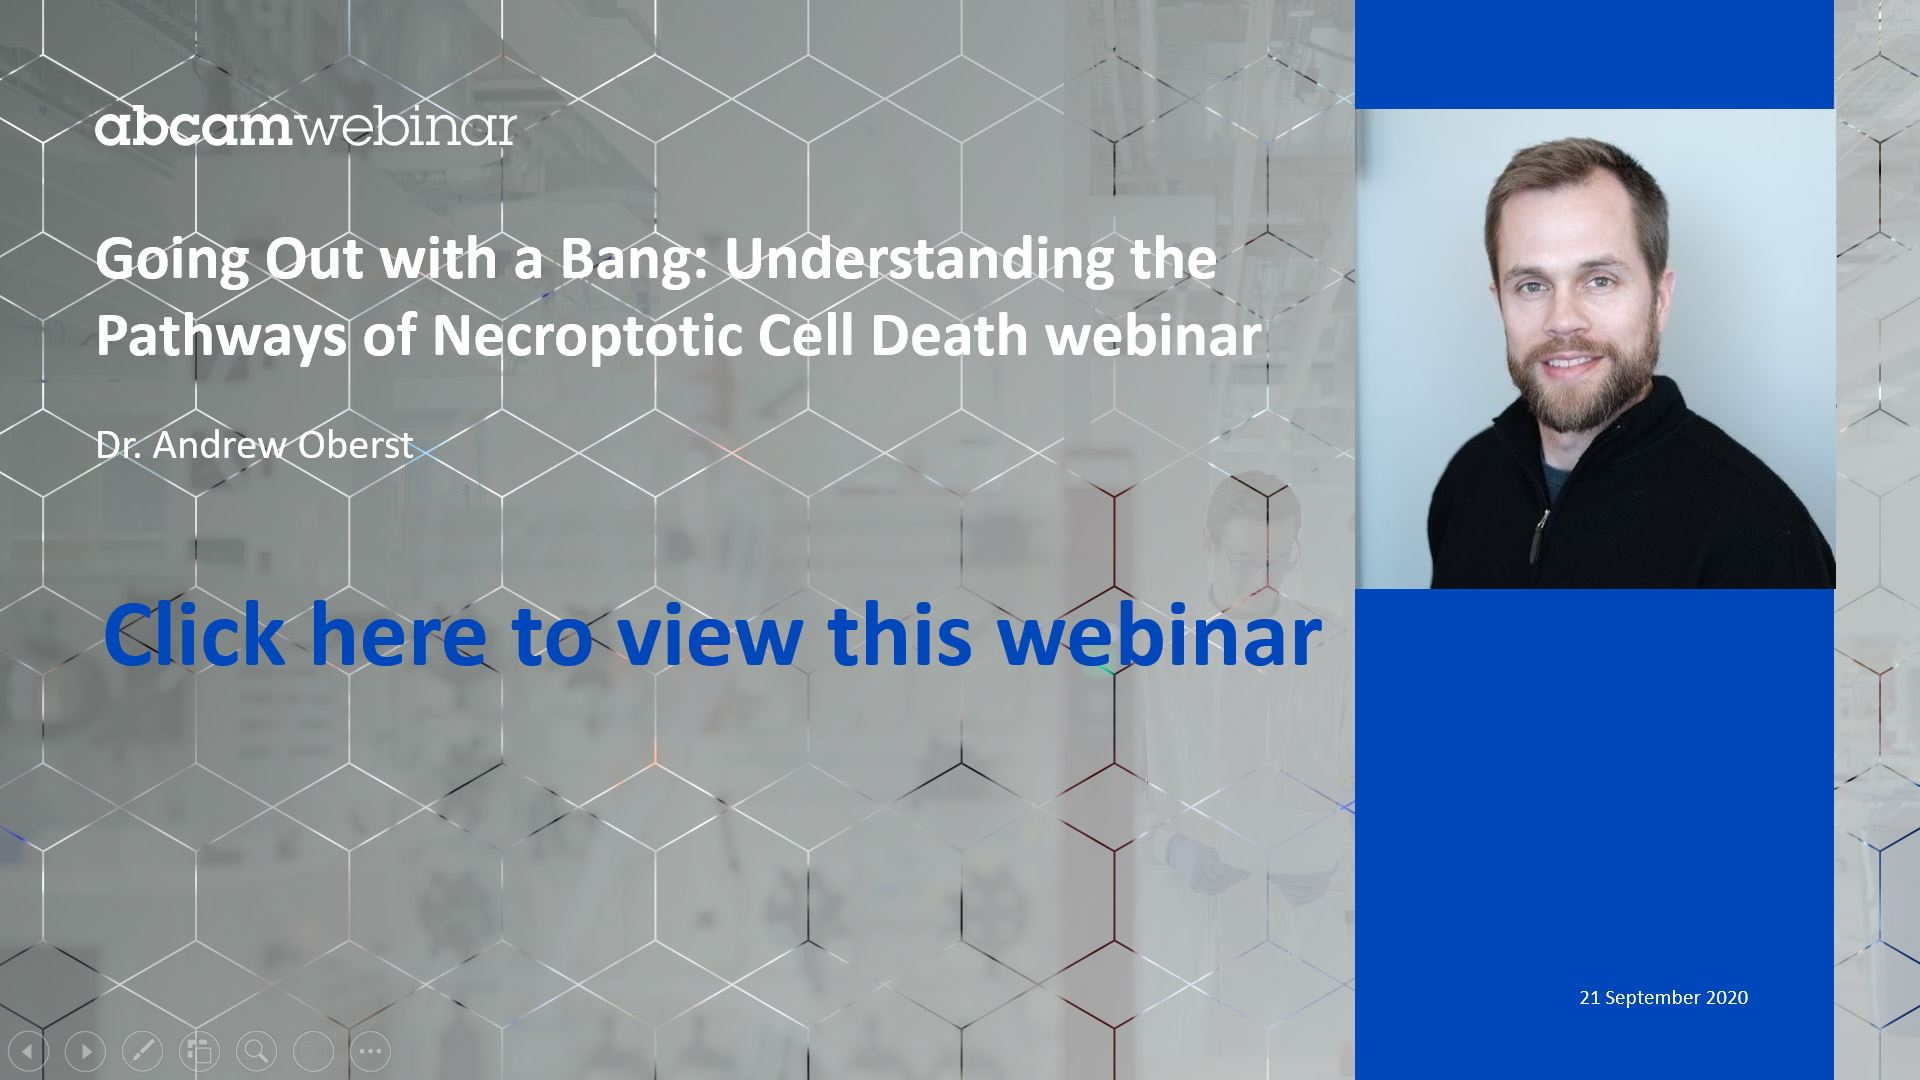 Going Out with a Bang: Understanding the Pathways of Necroptotic Cell Death Webinar